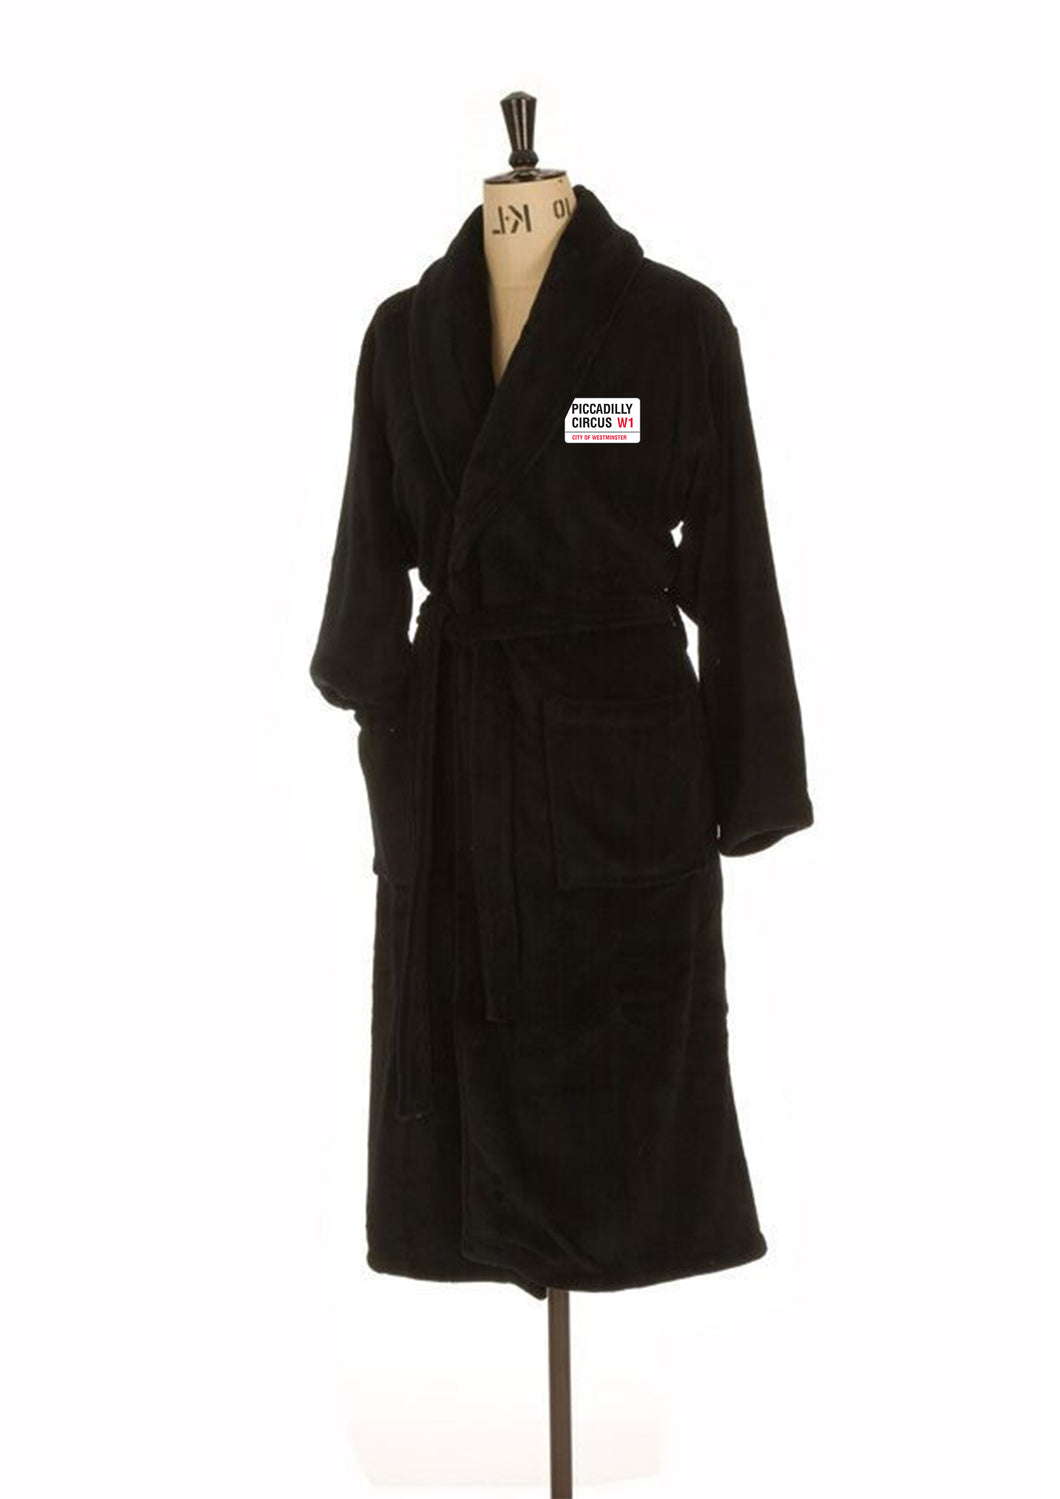 Piccadilly Circus Bathrobe